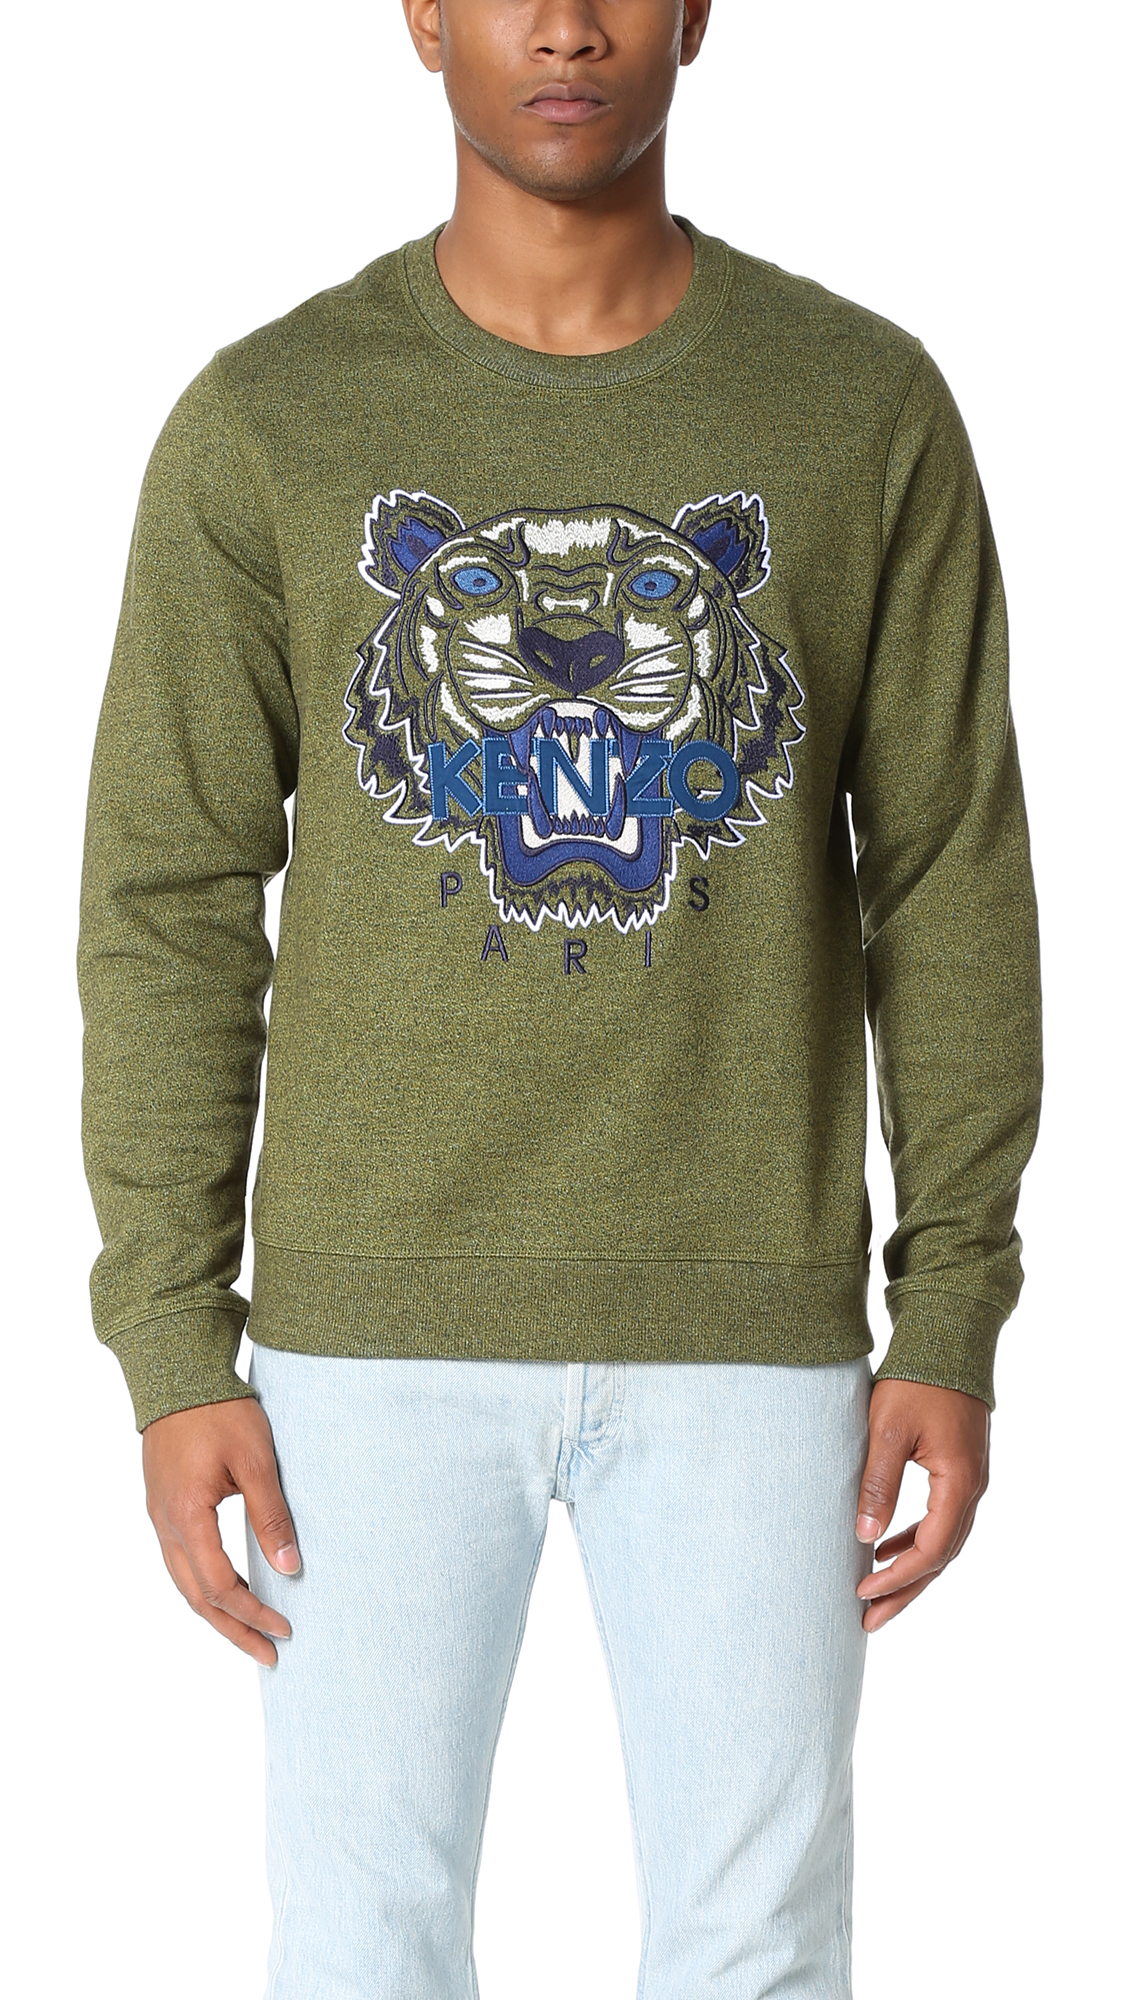 f779d026 Embroidered Lyst Kenzo For Men Sweatshirt Tiger HYDIWE92